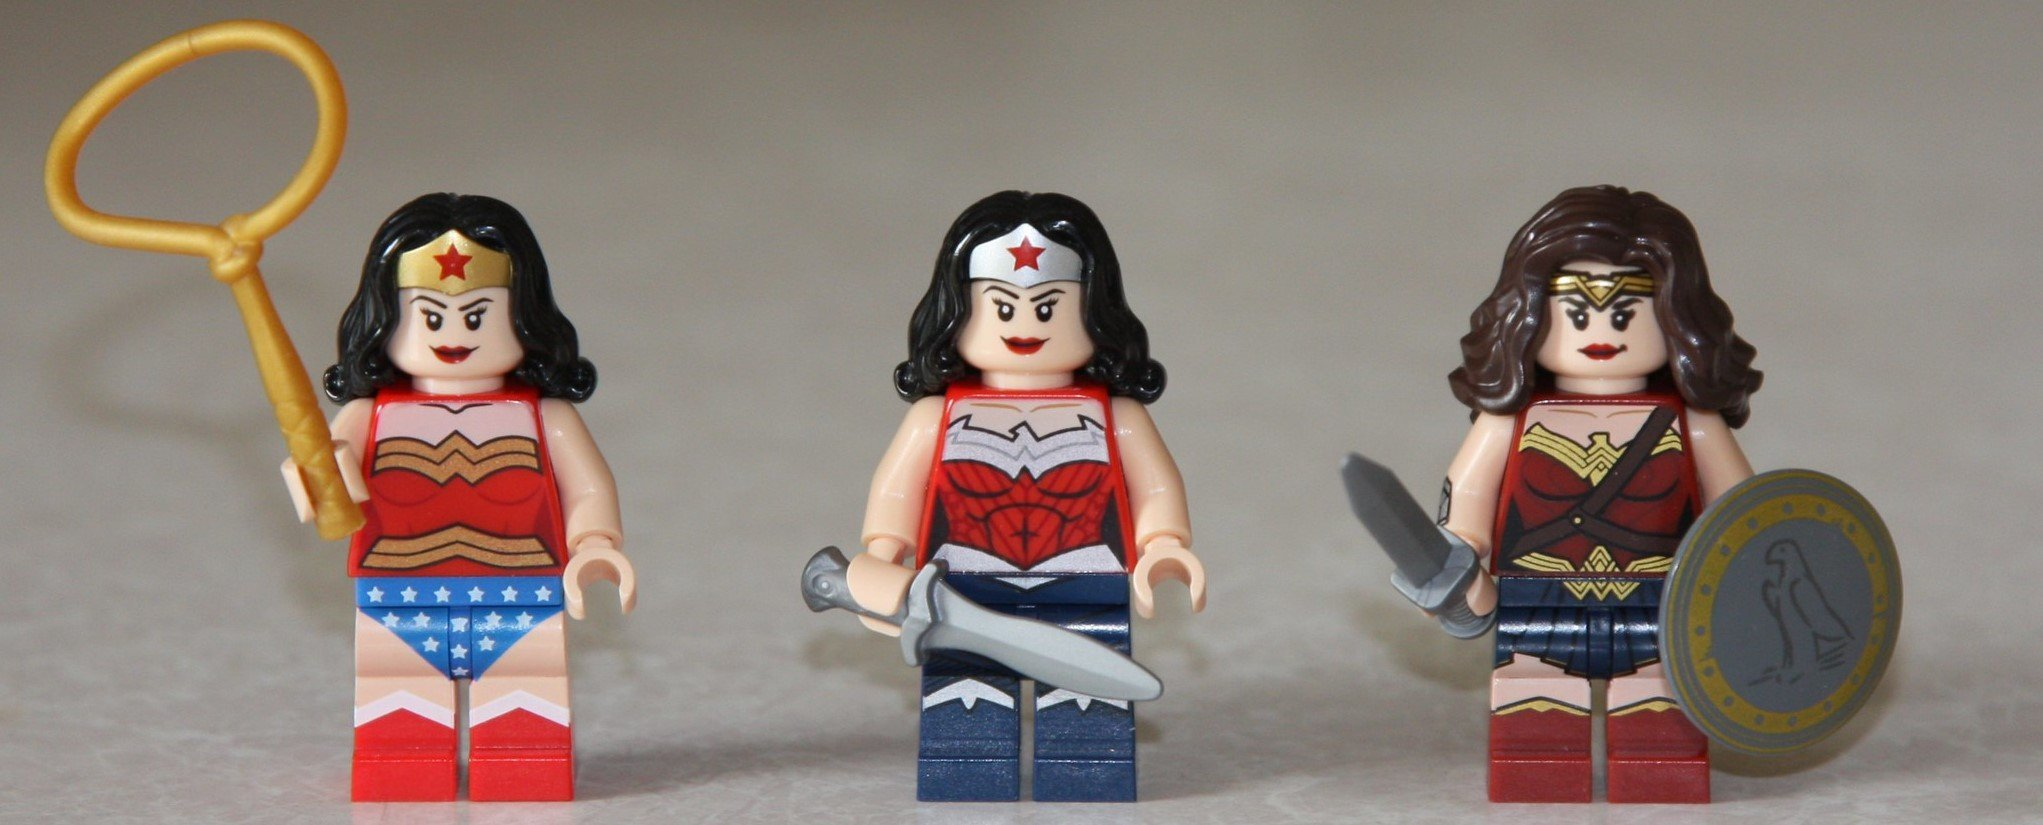 No matter which version of wonder woman it is, she always knows the fastest way to build muscle (fight for justice).